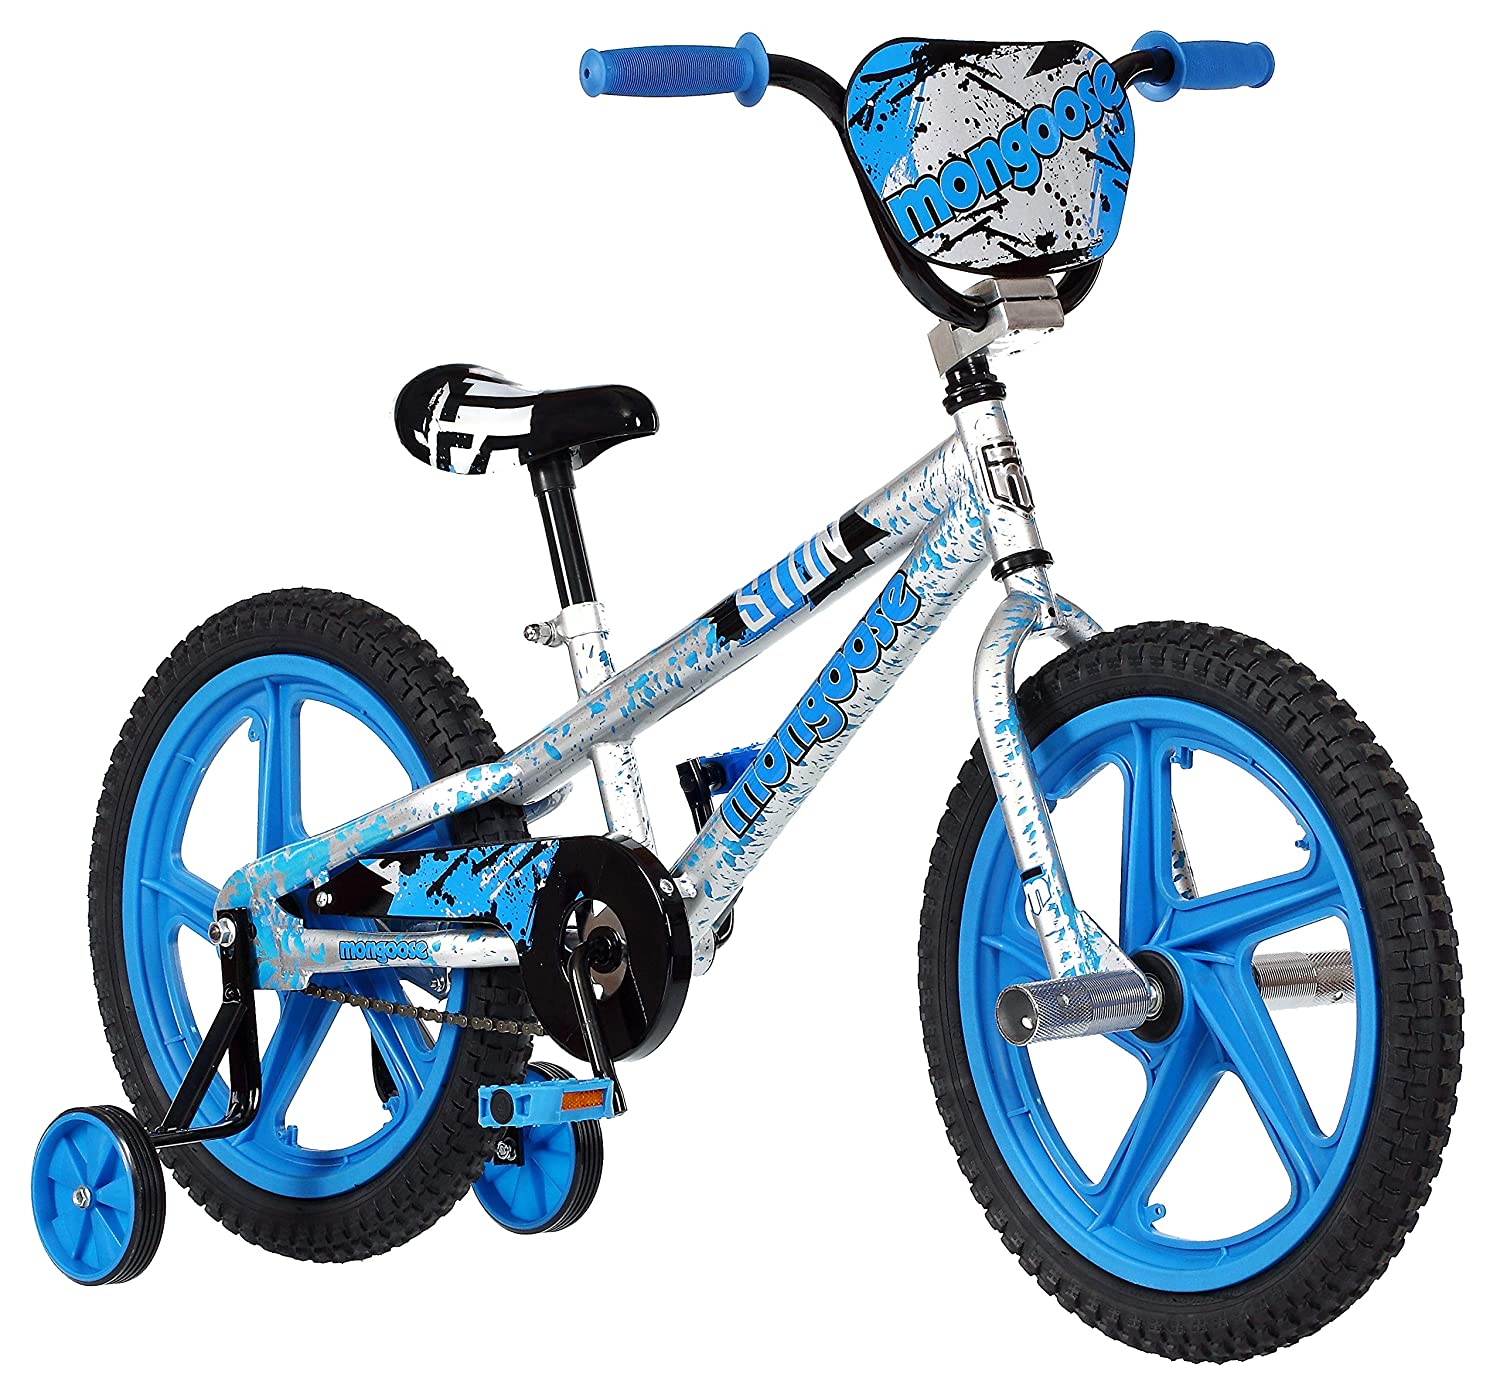 ef8a88f2942 Amazon.com : Mongoose Stun Boy's Freestyle BMX Bike with Training Wheels,  18-Inch Wheels, Blue : Sports & Outdoors